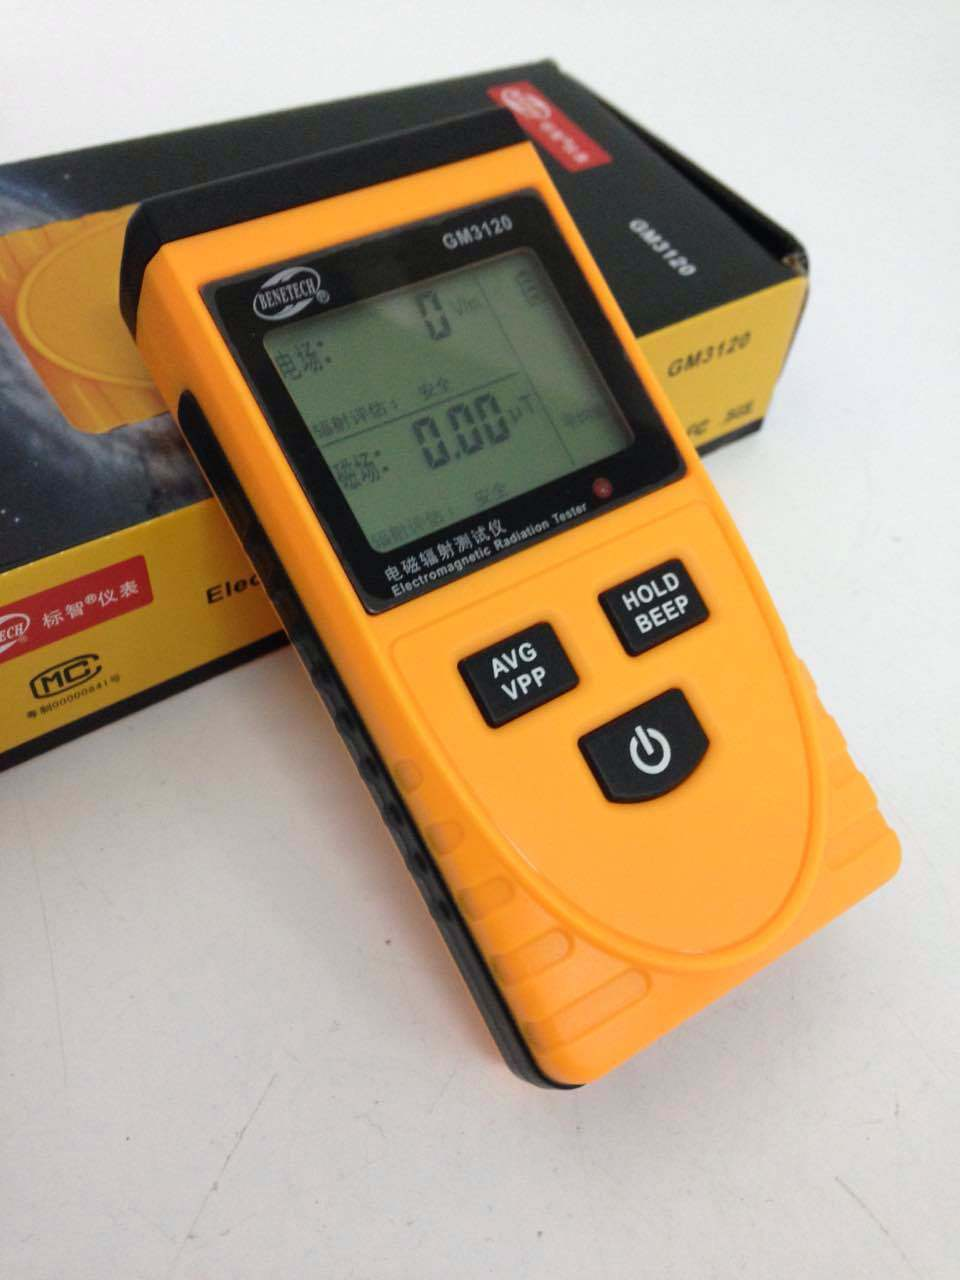 English Ui CE Certificated Digital LCD Electromagnetic Radiation Detector Meter Dosimeter Tester Without Battery